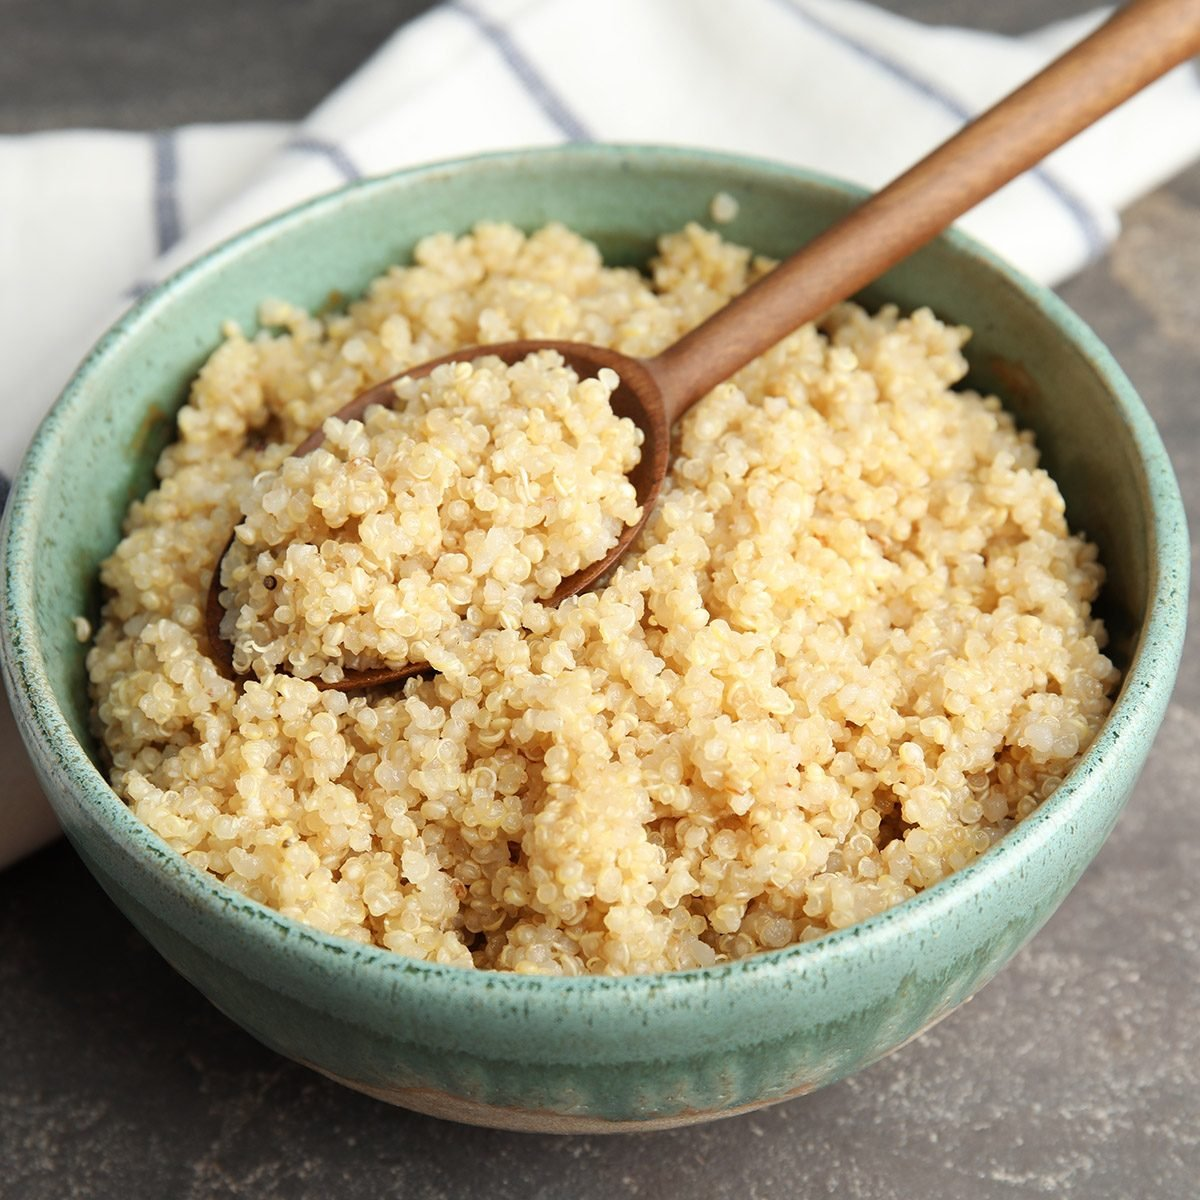 Composition with cooked quinoa in bowl and wooden spoon on table